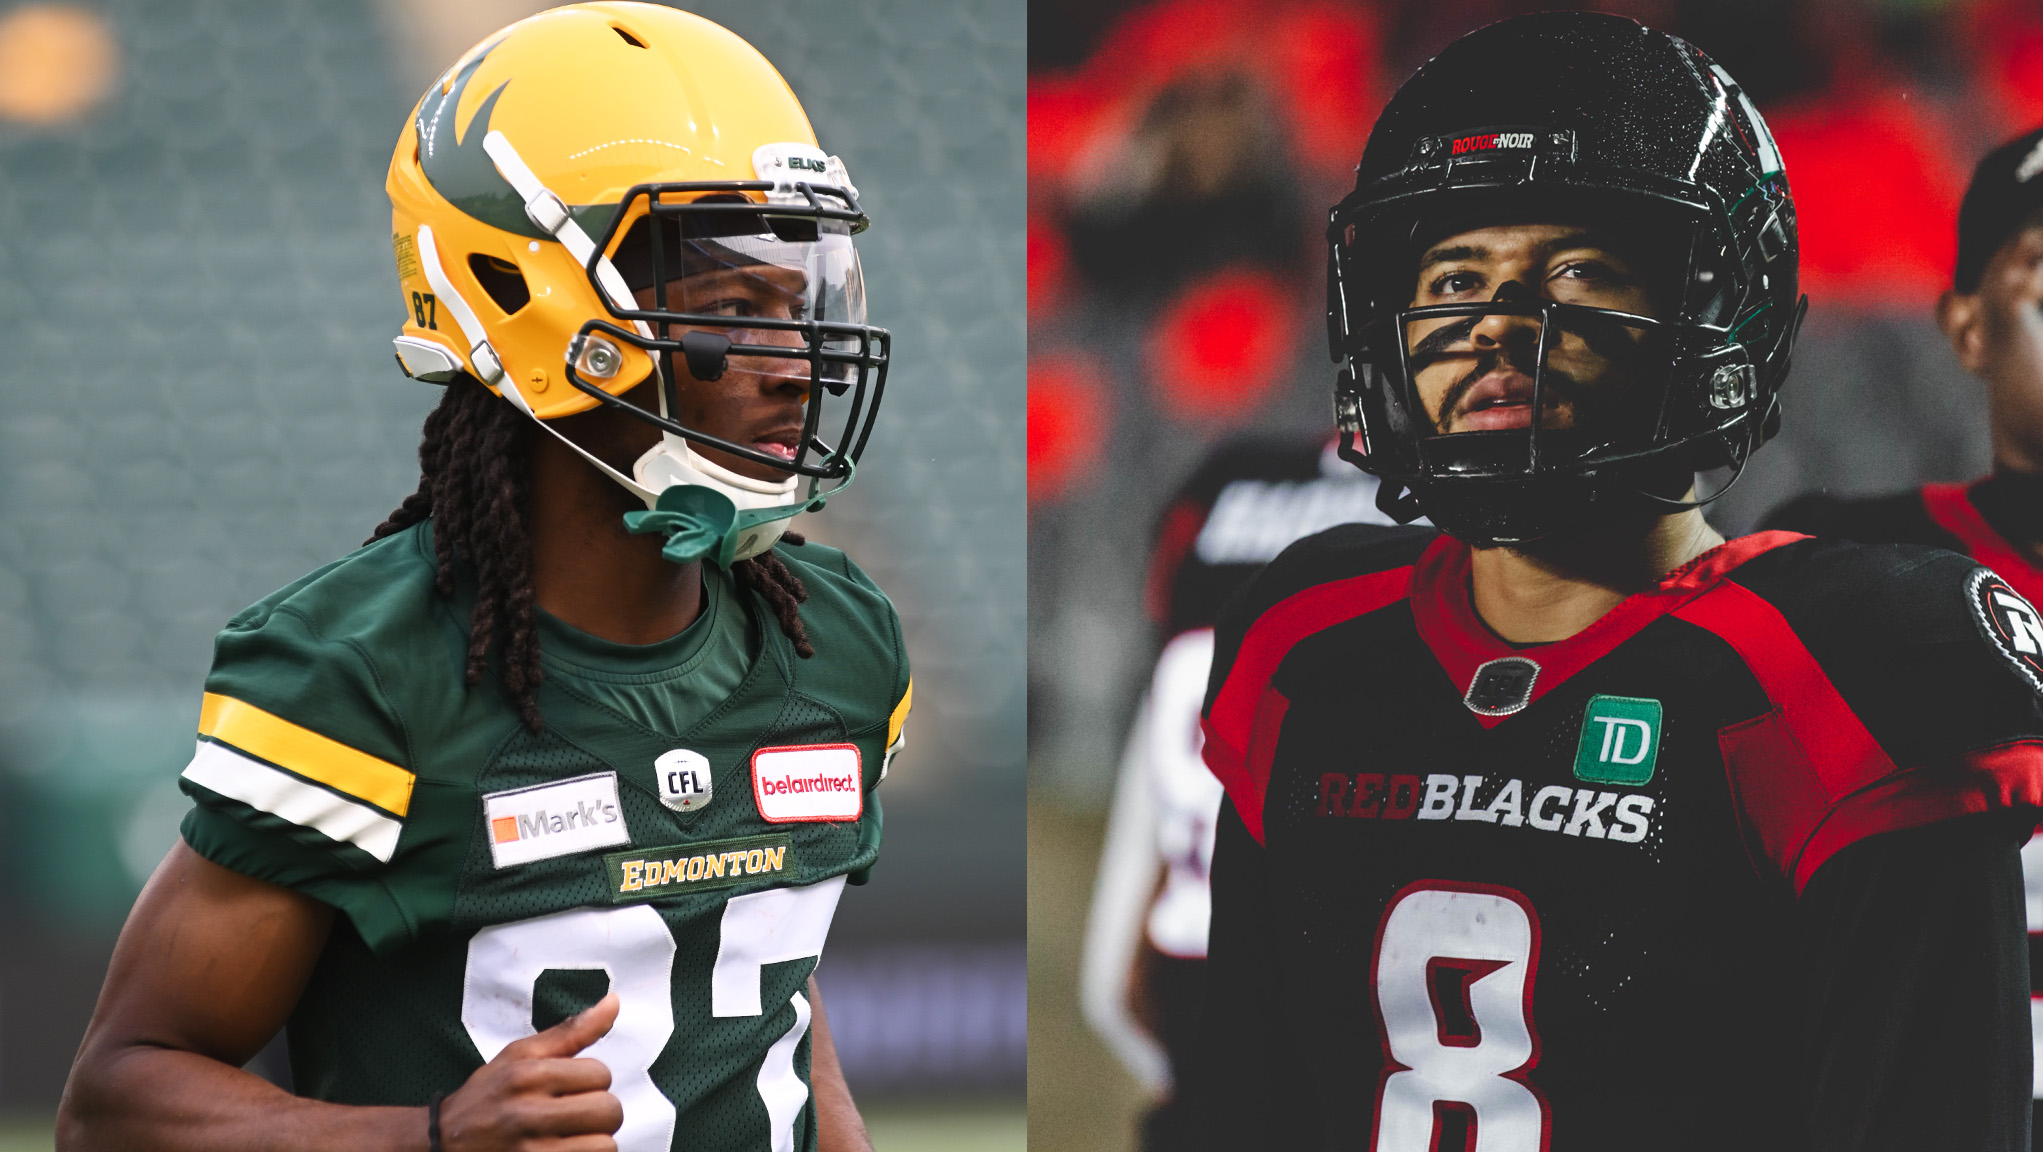 Elks, REDBLACKS meet on Tuesday in the nation's capital